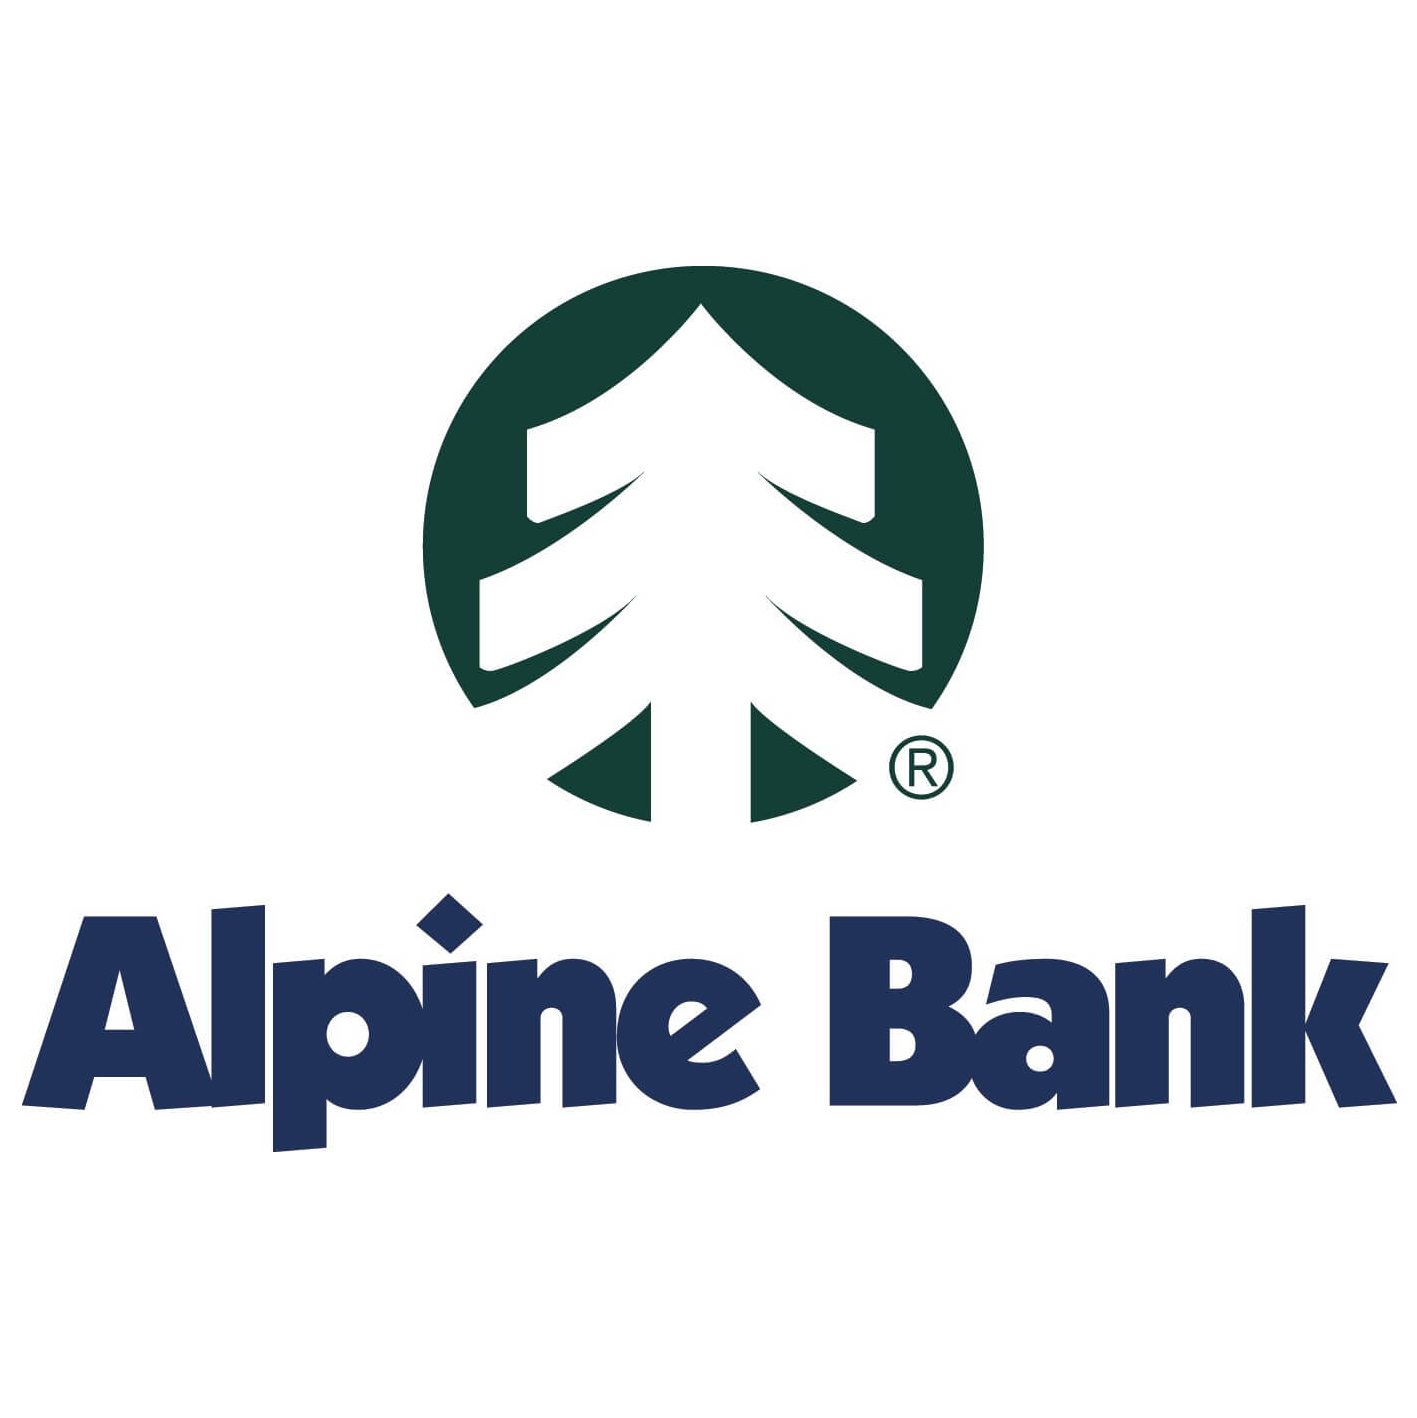 Alpine-Bank-Color-stacked-logo.jpg